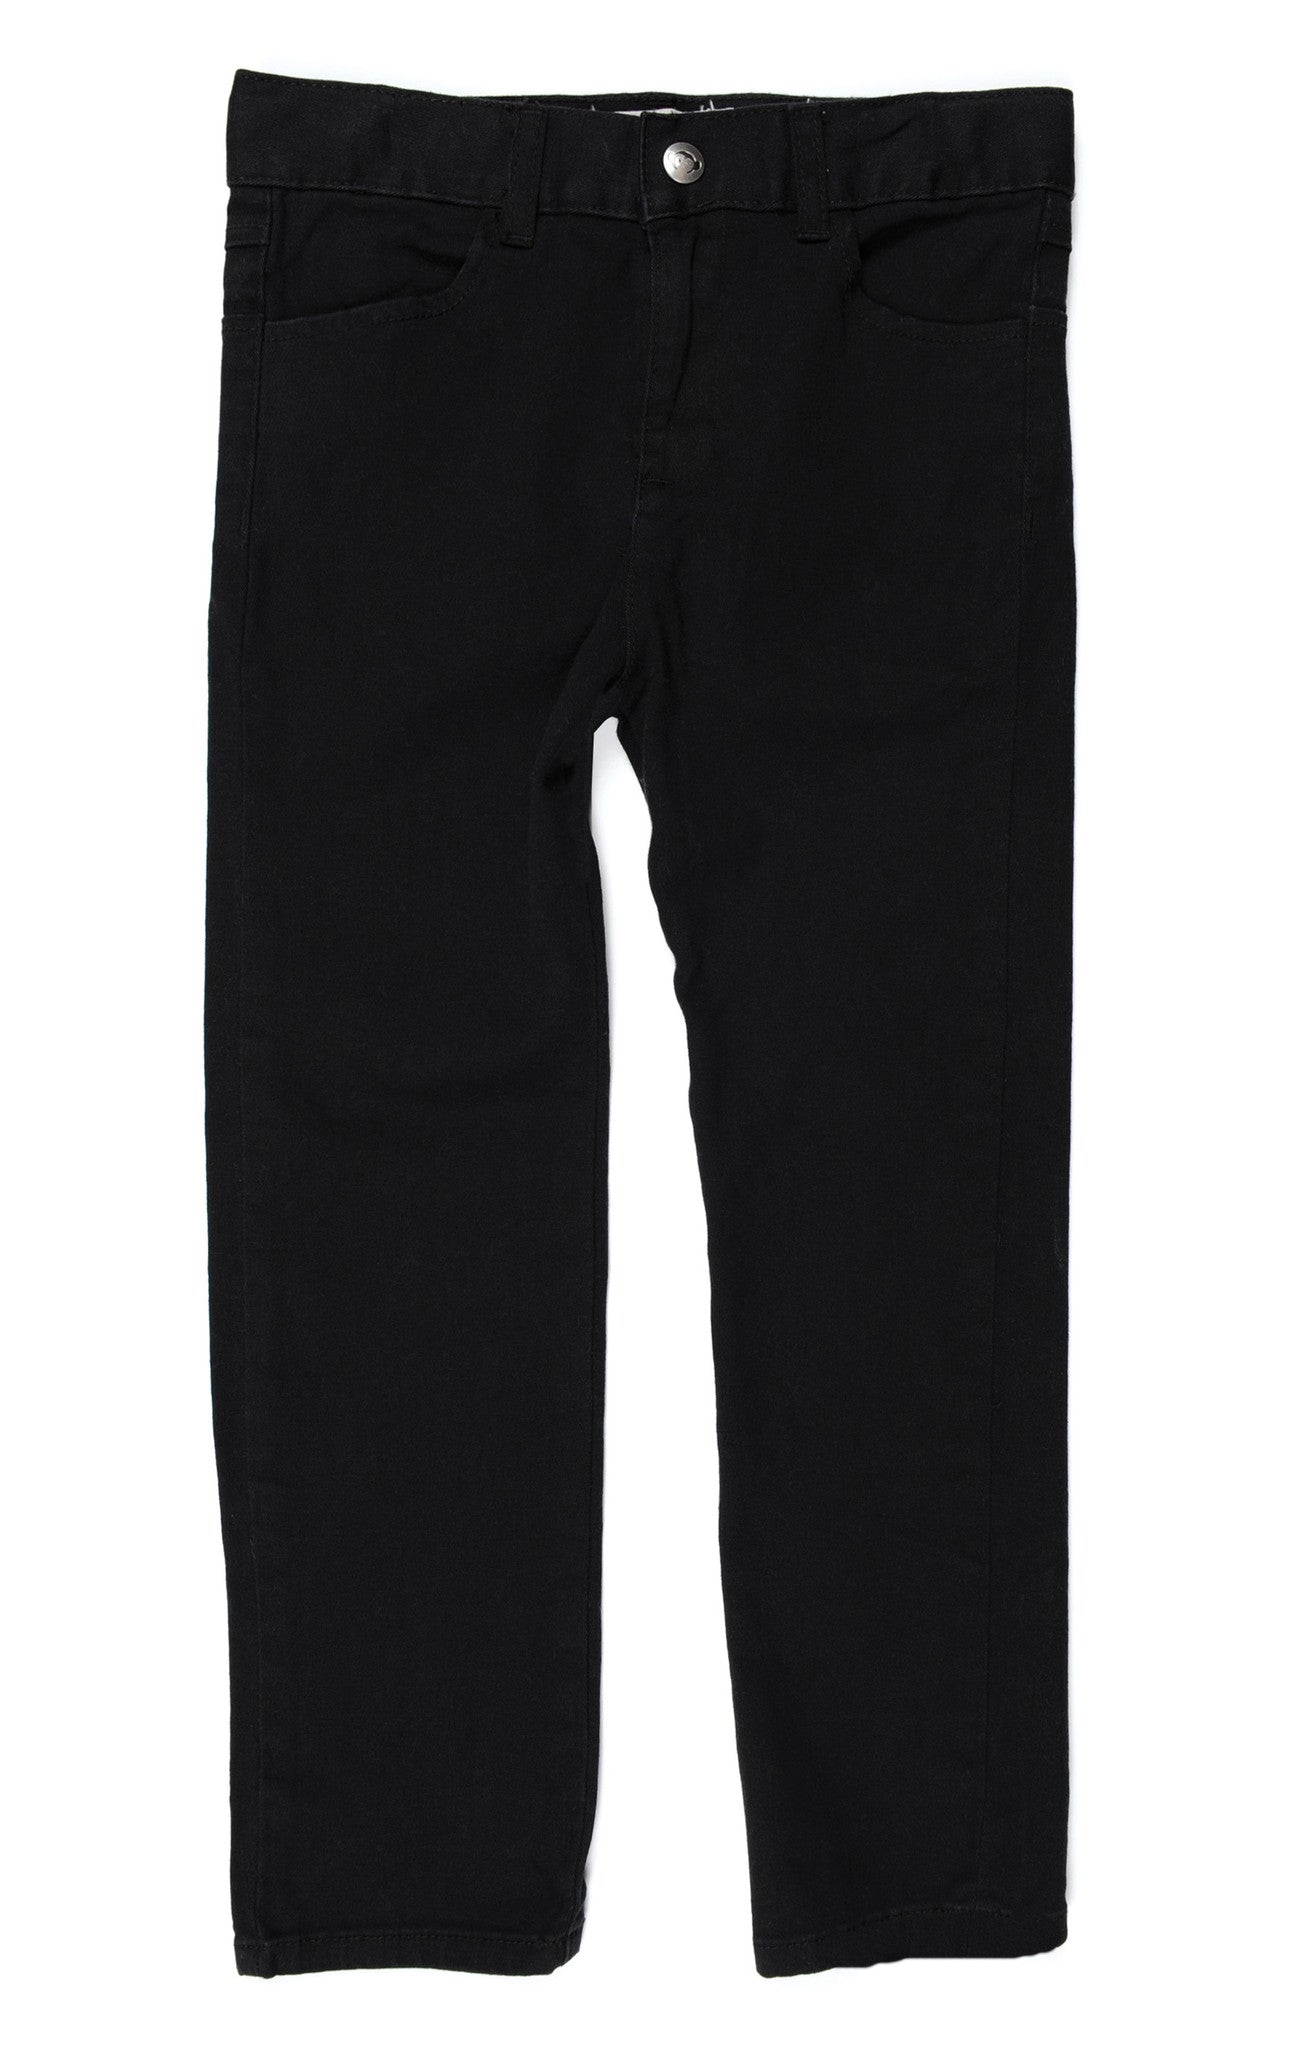 Appaman Black Twill Pants